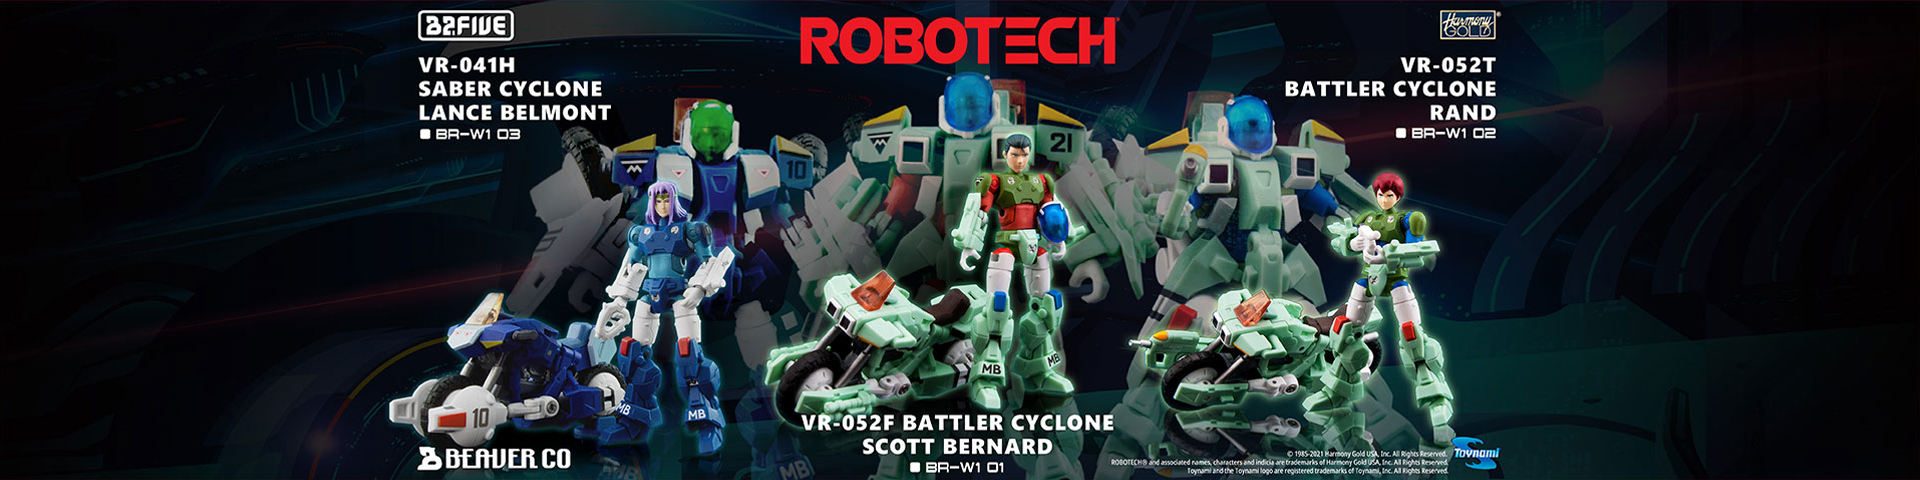 Robotech_Banners_Web-page